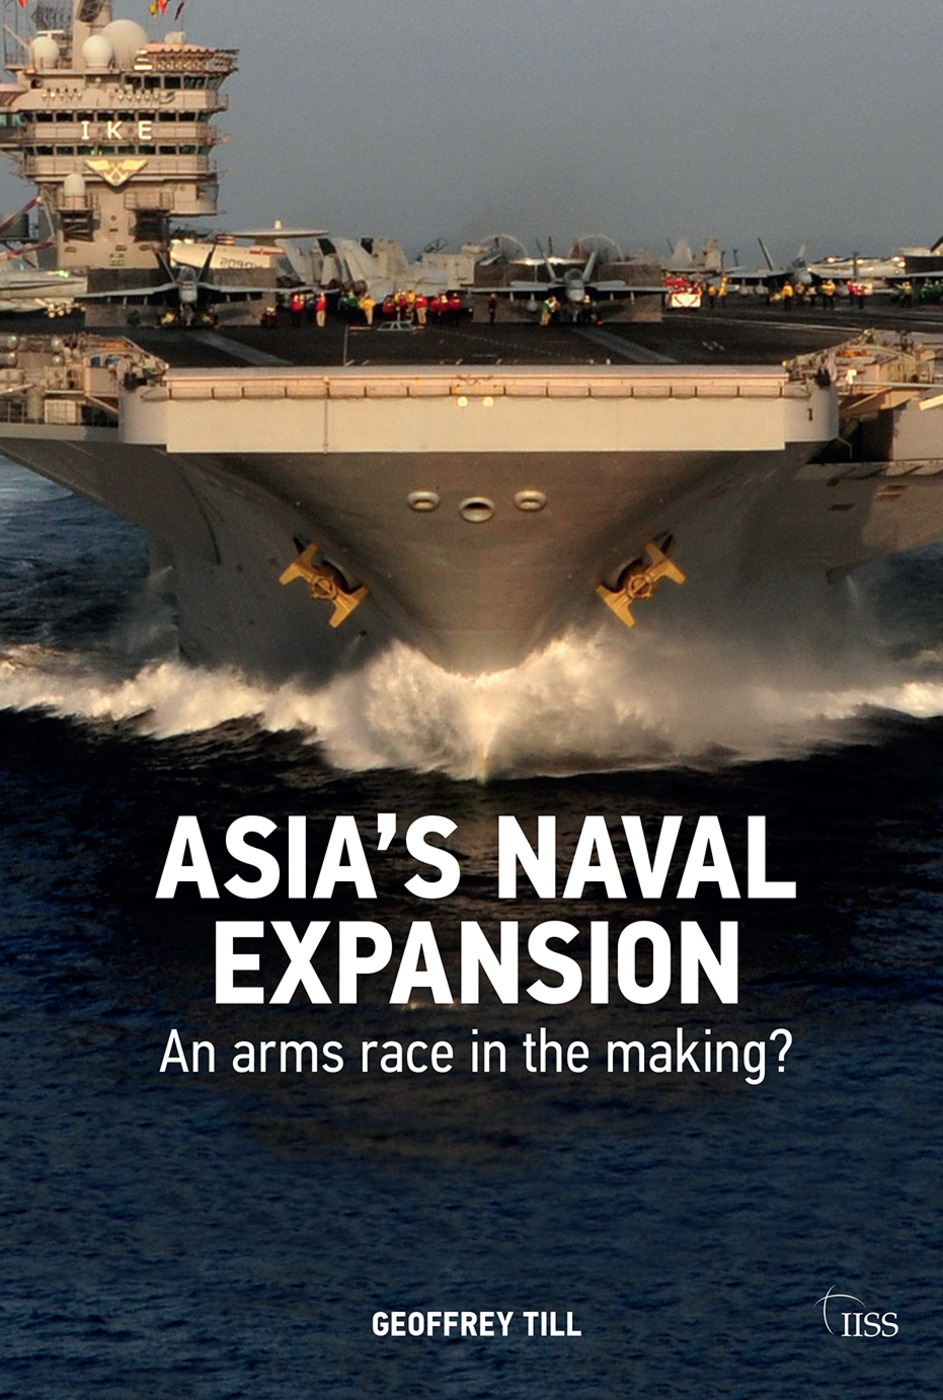 Asia's Naval Expansion: An Arms Race in the Making? book cover